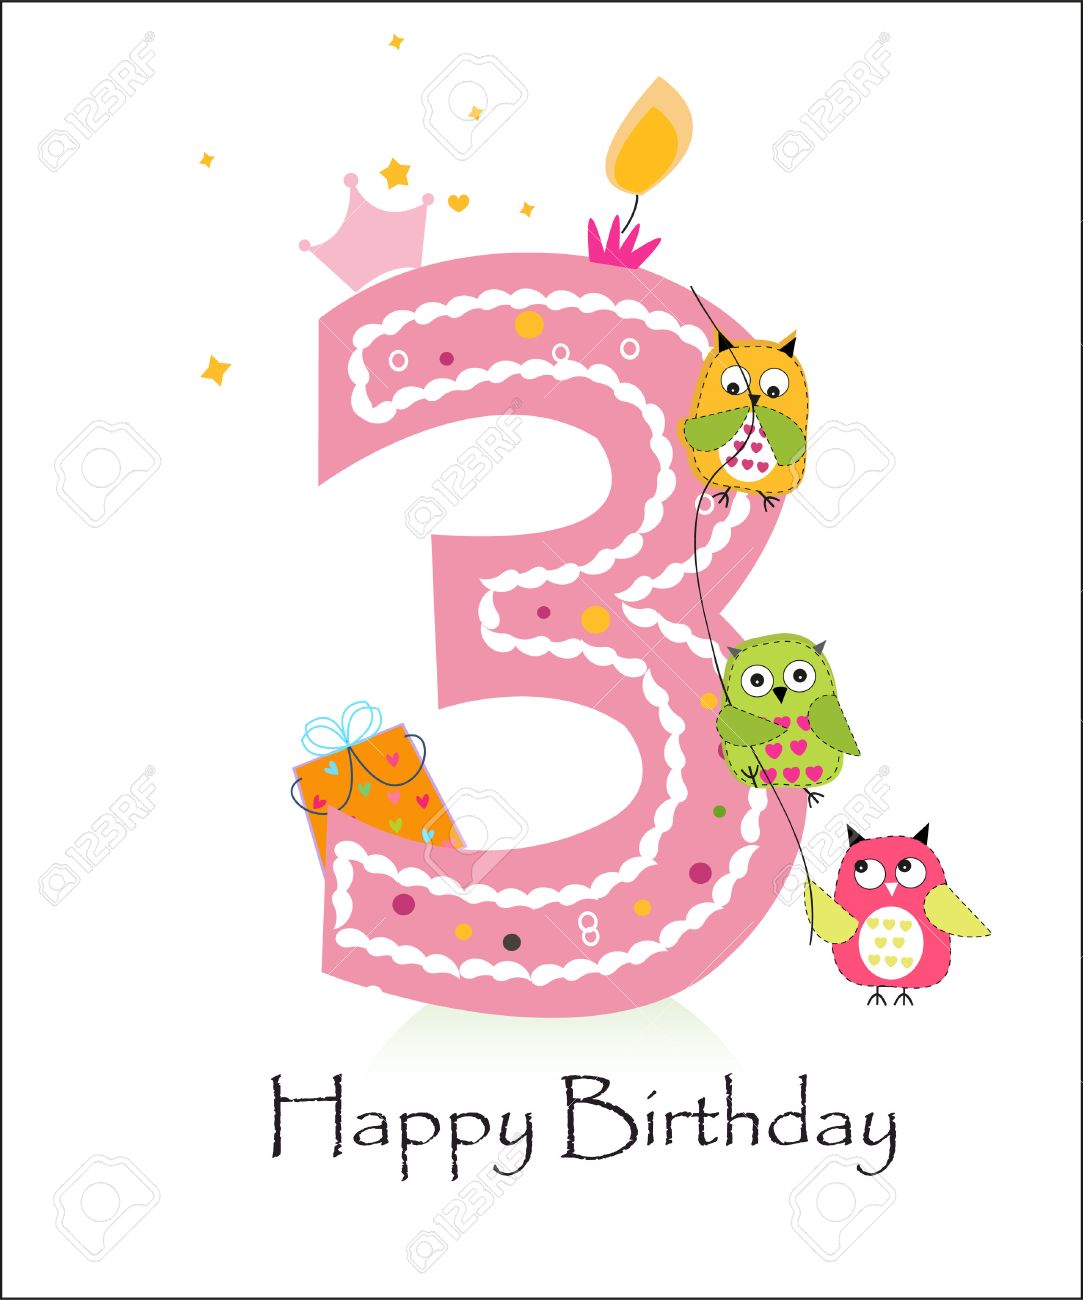 3rd birthday clipart ; 47878763-happy-third-birthday-baby-girl-greeting-card-with-owls-vector